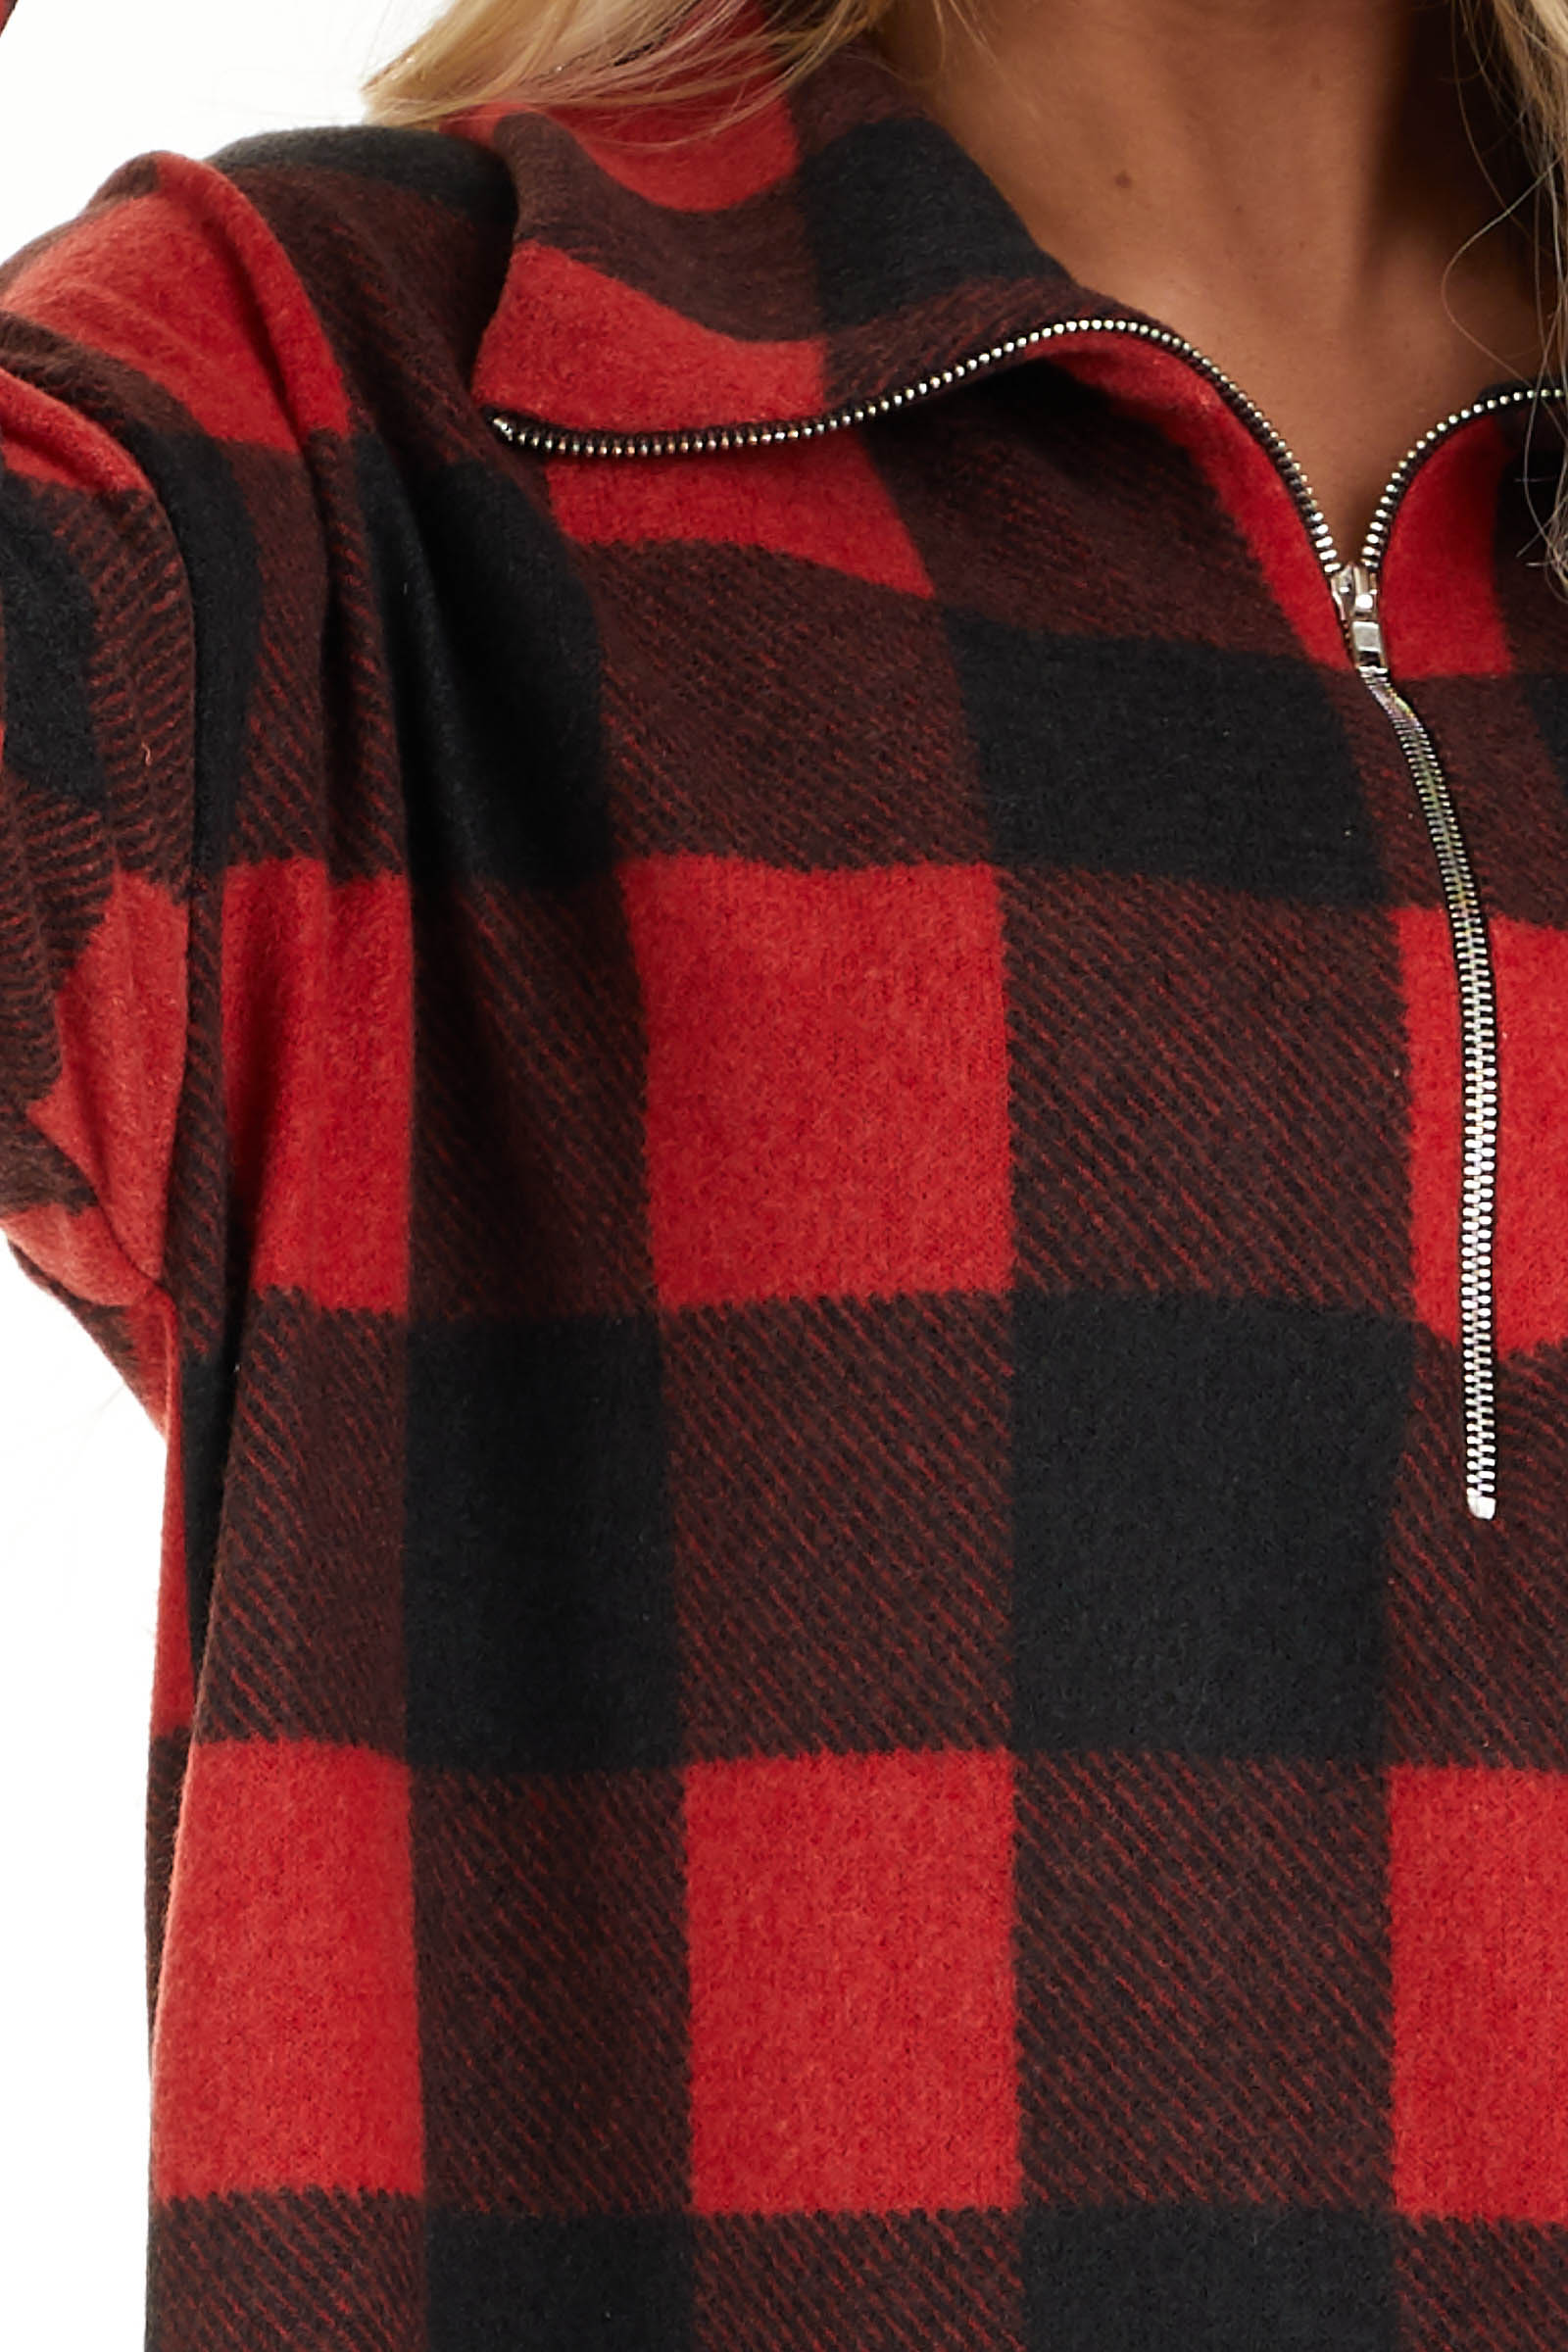 Candy Apple Red Buffalo Plaid Pullover Fleece Jacket detail